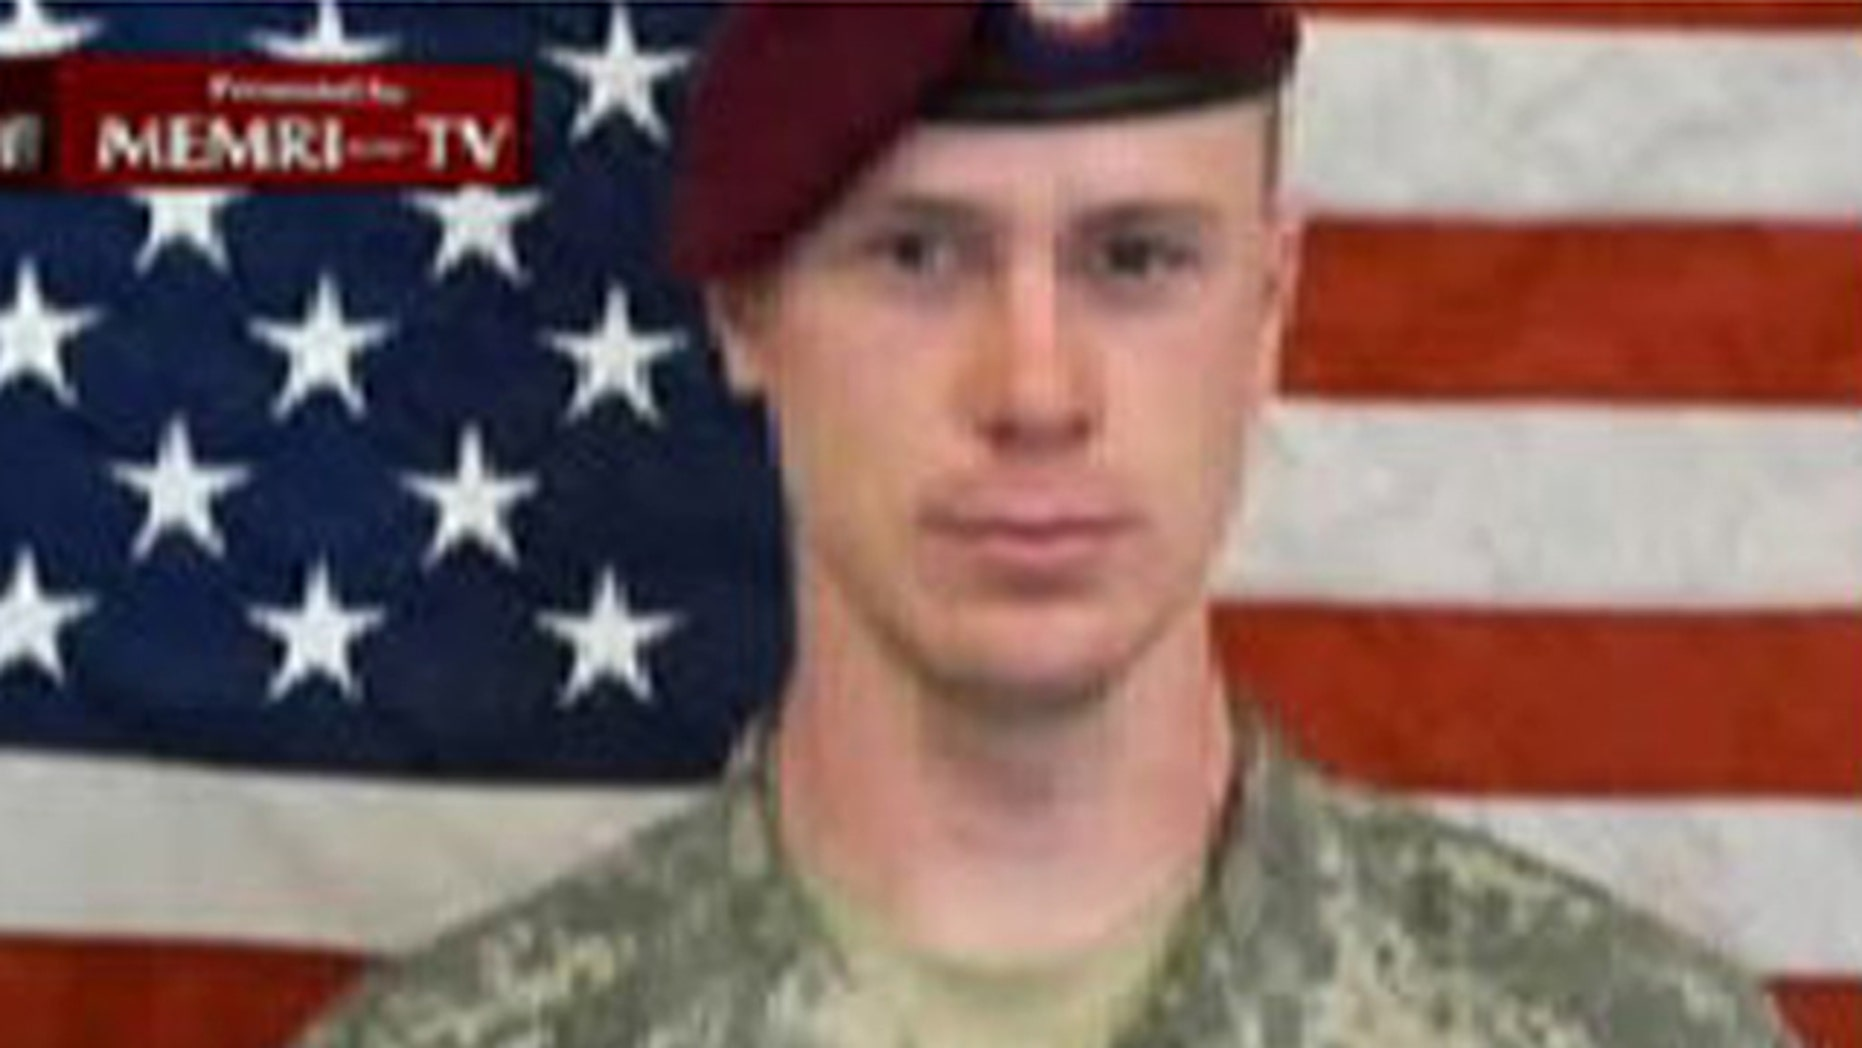 Pfc. Bowe Bergdahl is shown here in a Taliban-produced video.